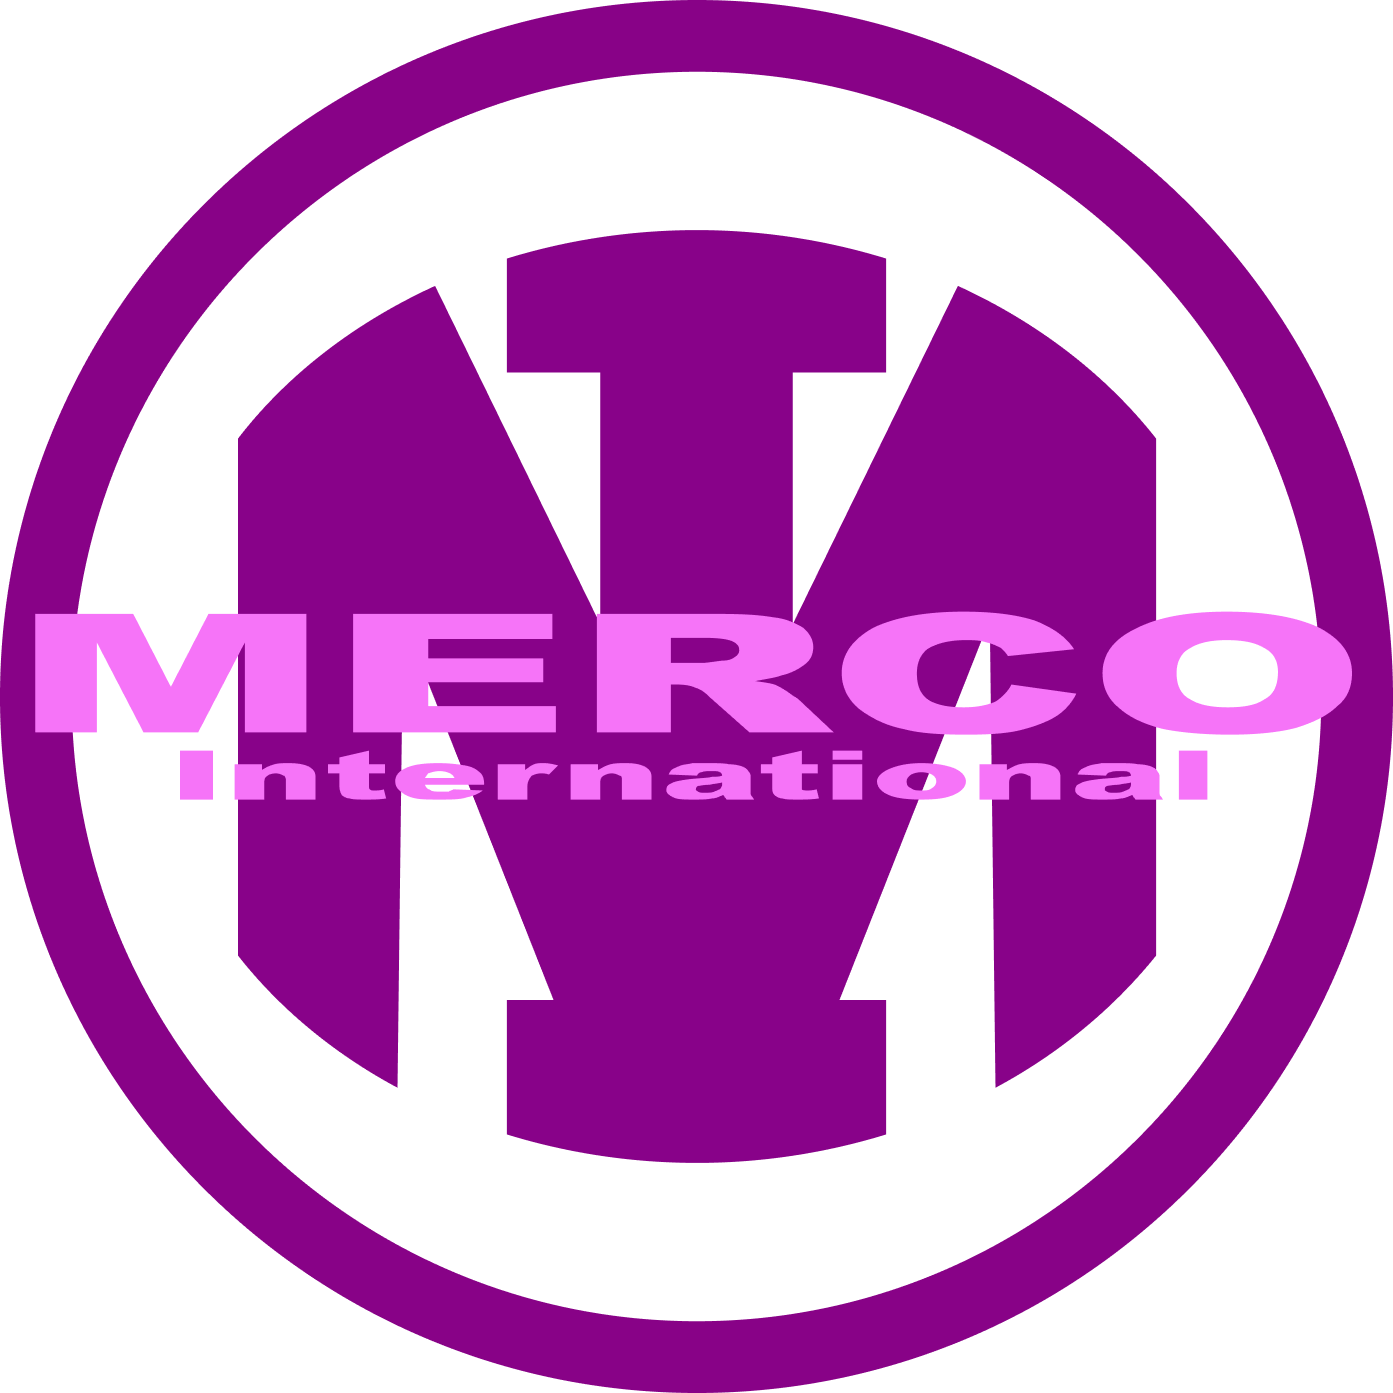 Merco International